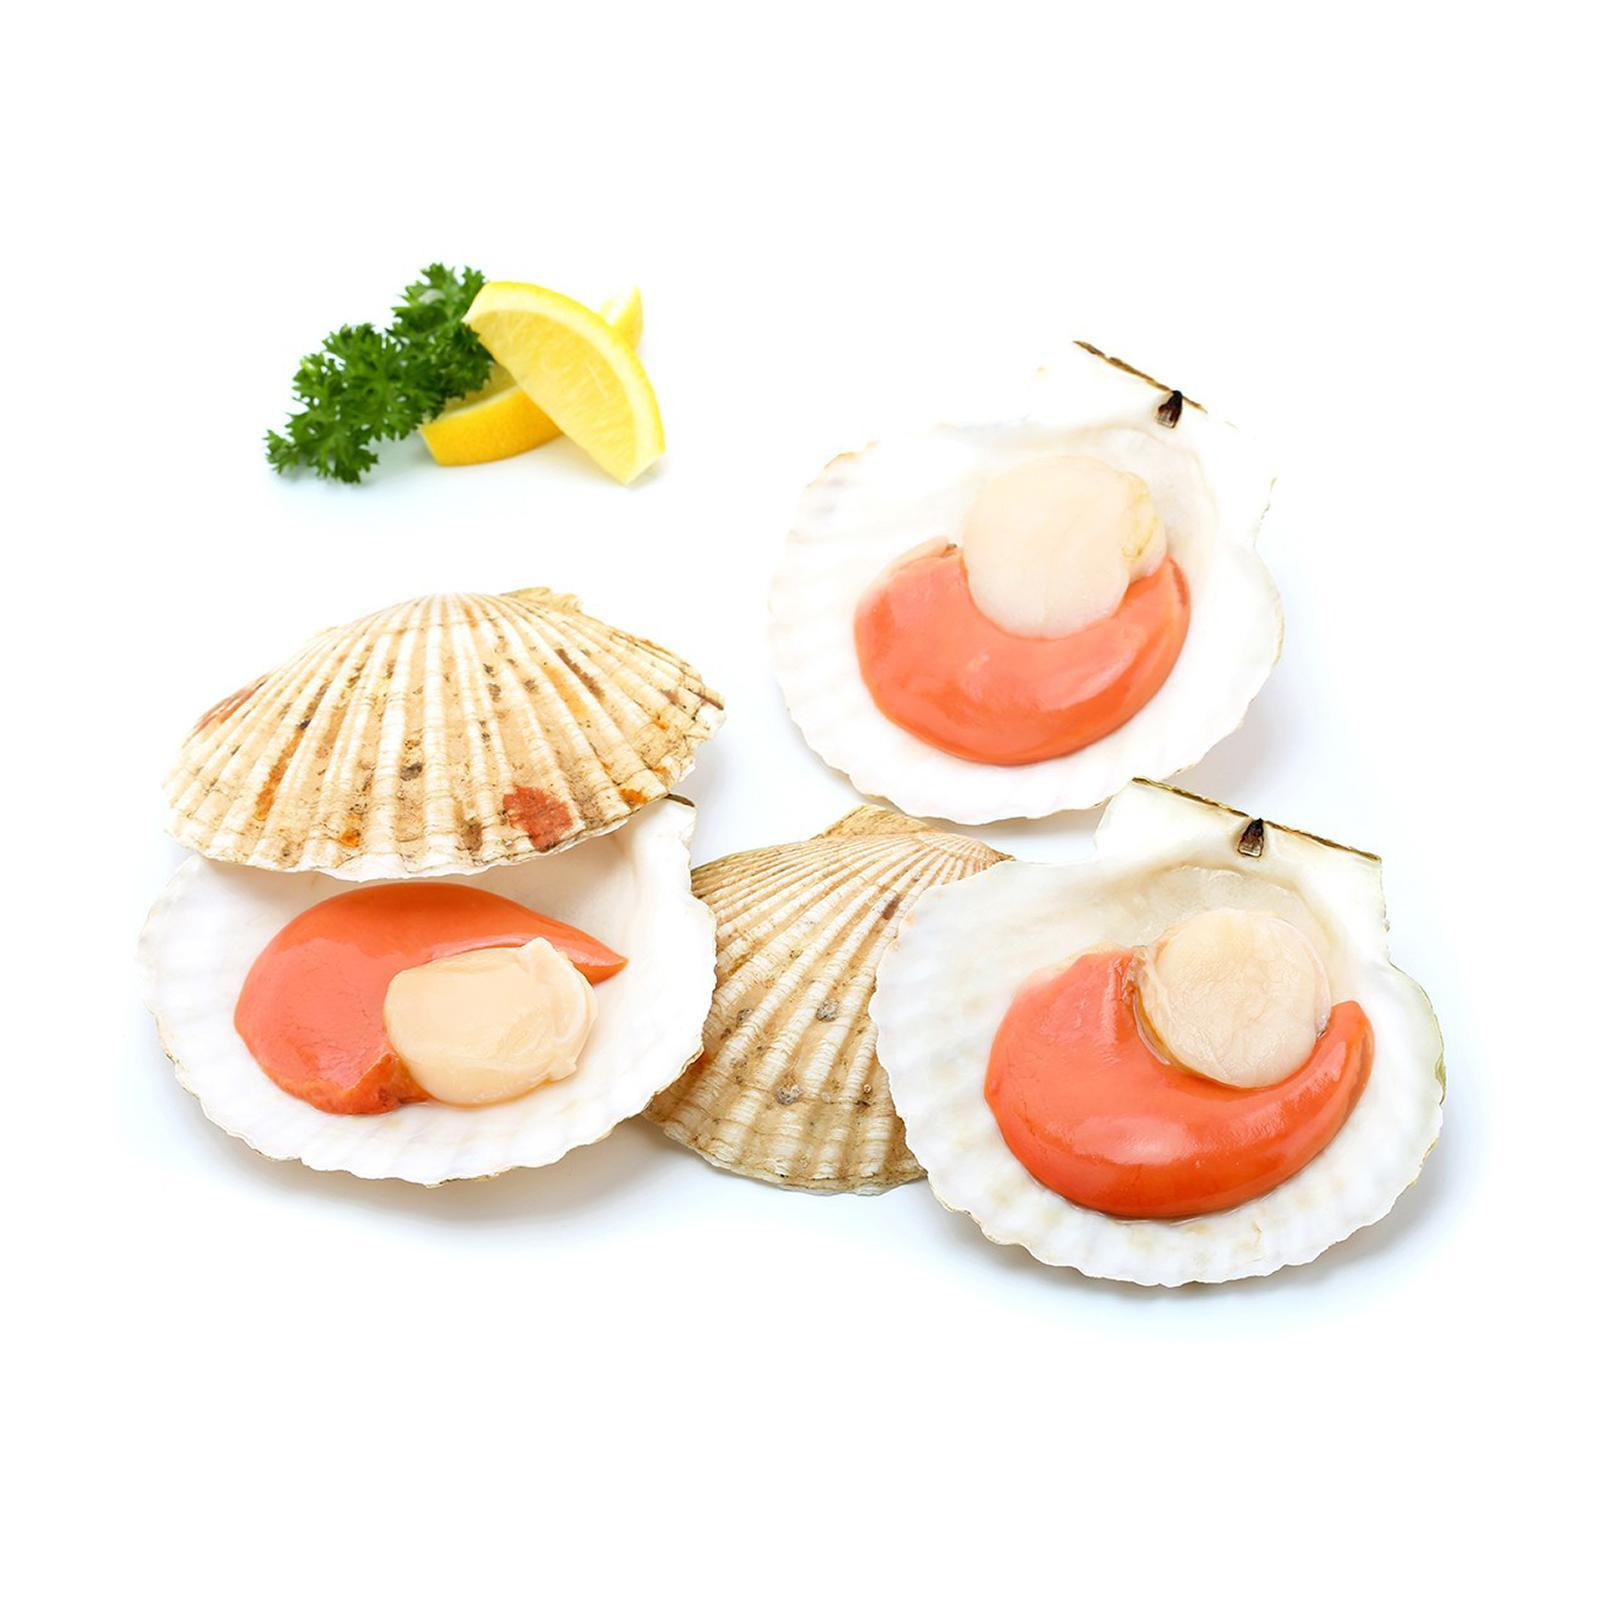 Catch Seafood 1/2 Shell Scallop With Shell (12 Piece+-) - Frozen